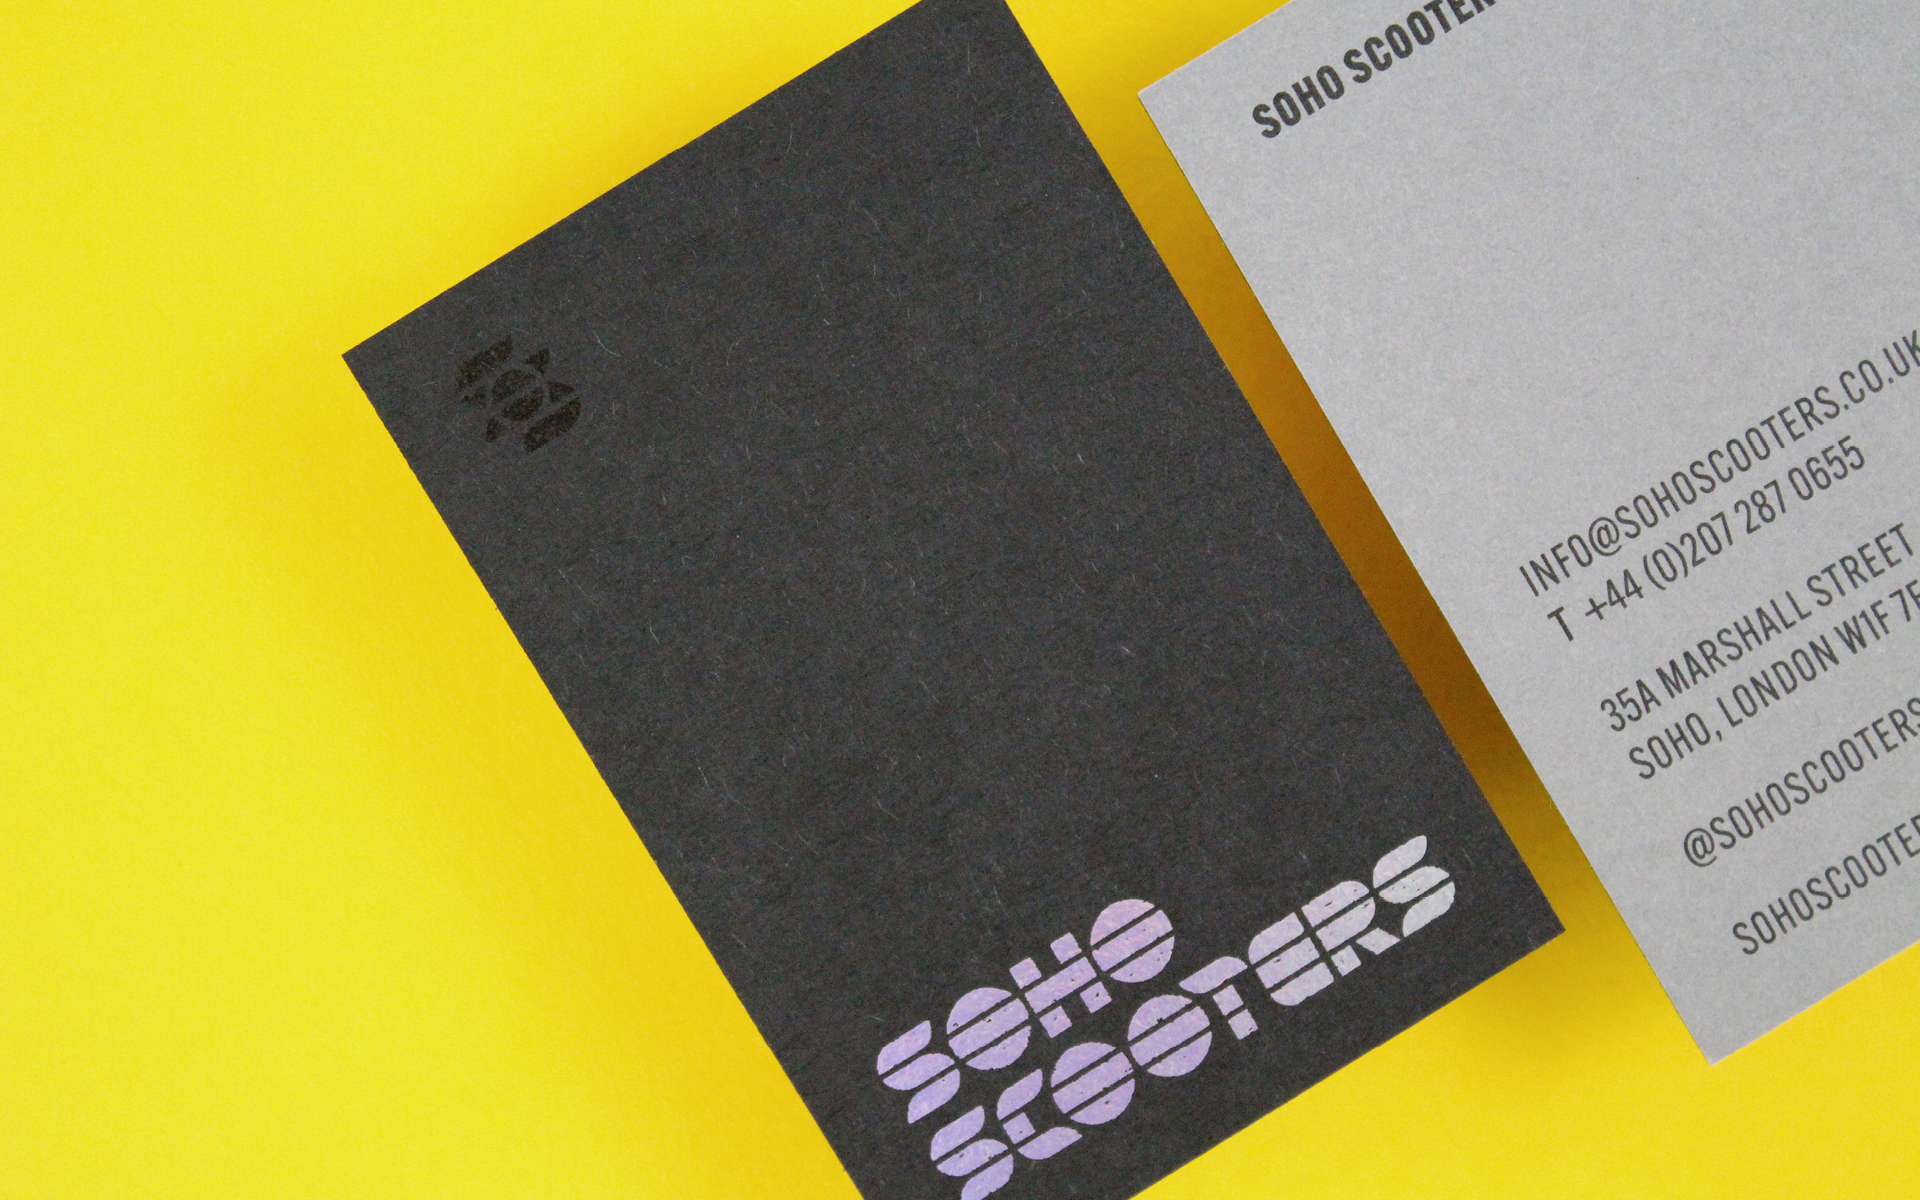 Business card design for Soho Scooters